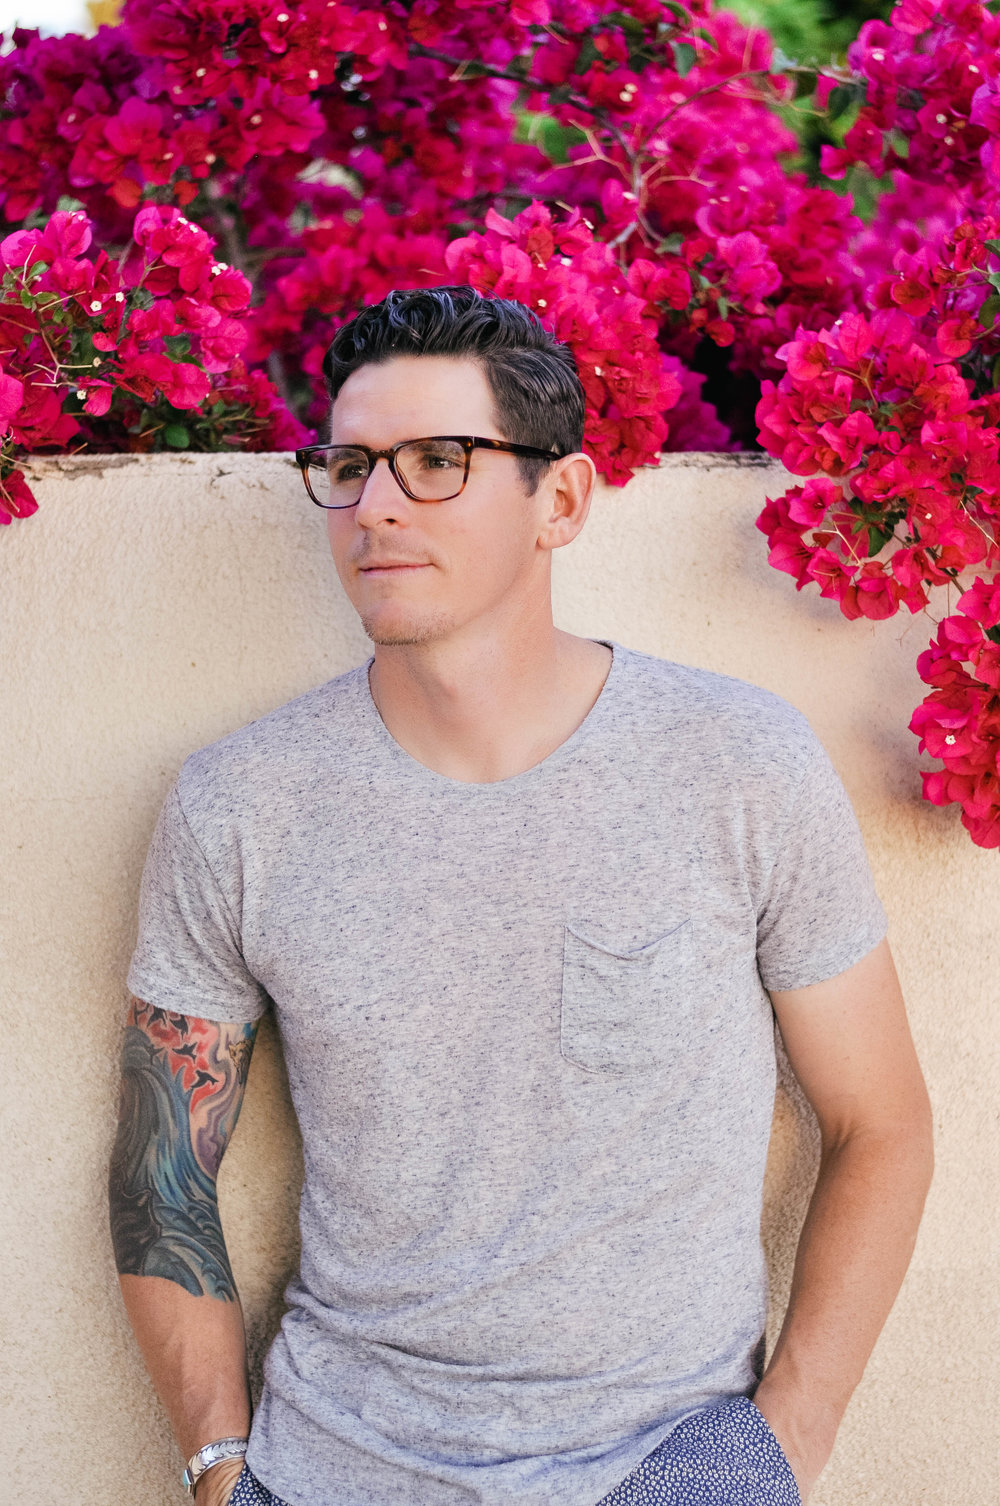 The Best Men's Accessories - Warby Parker Burke Glasses